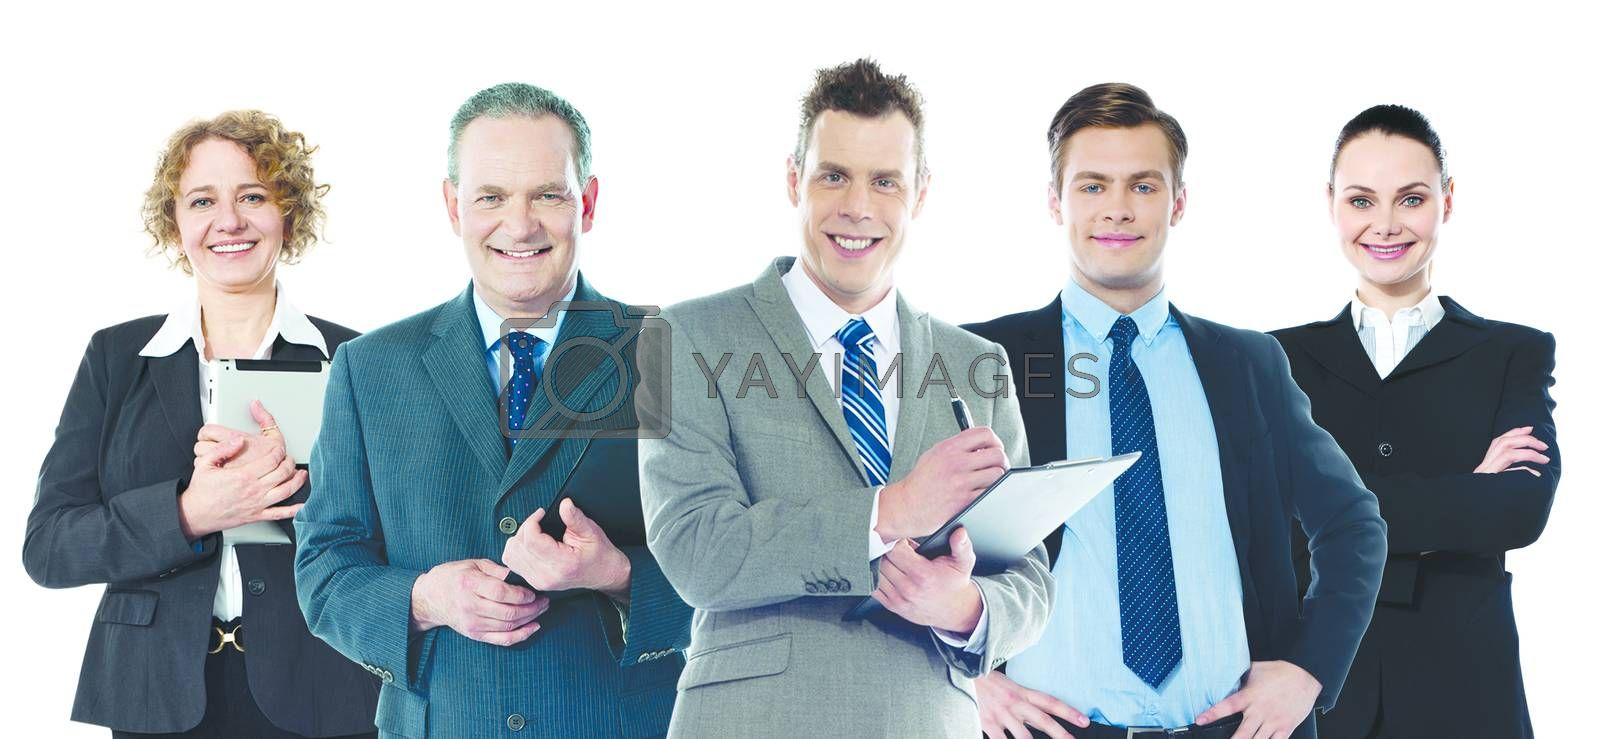 Group of business people posing to camera